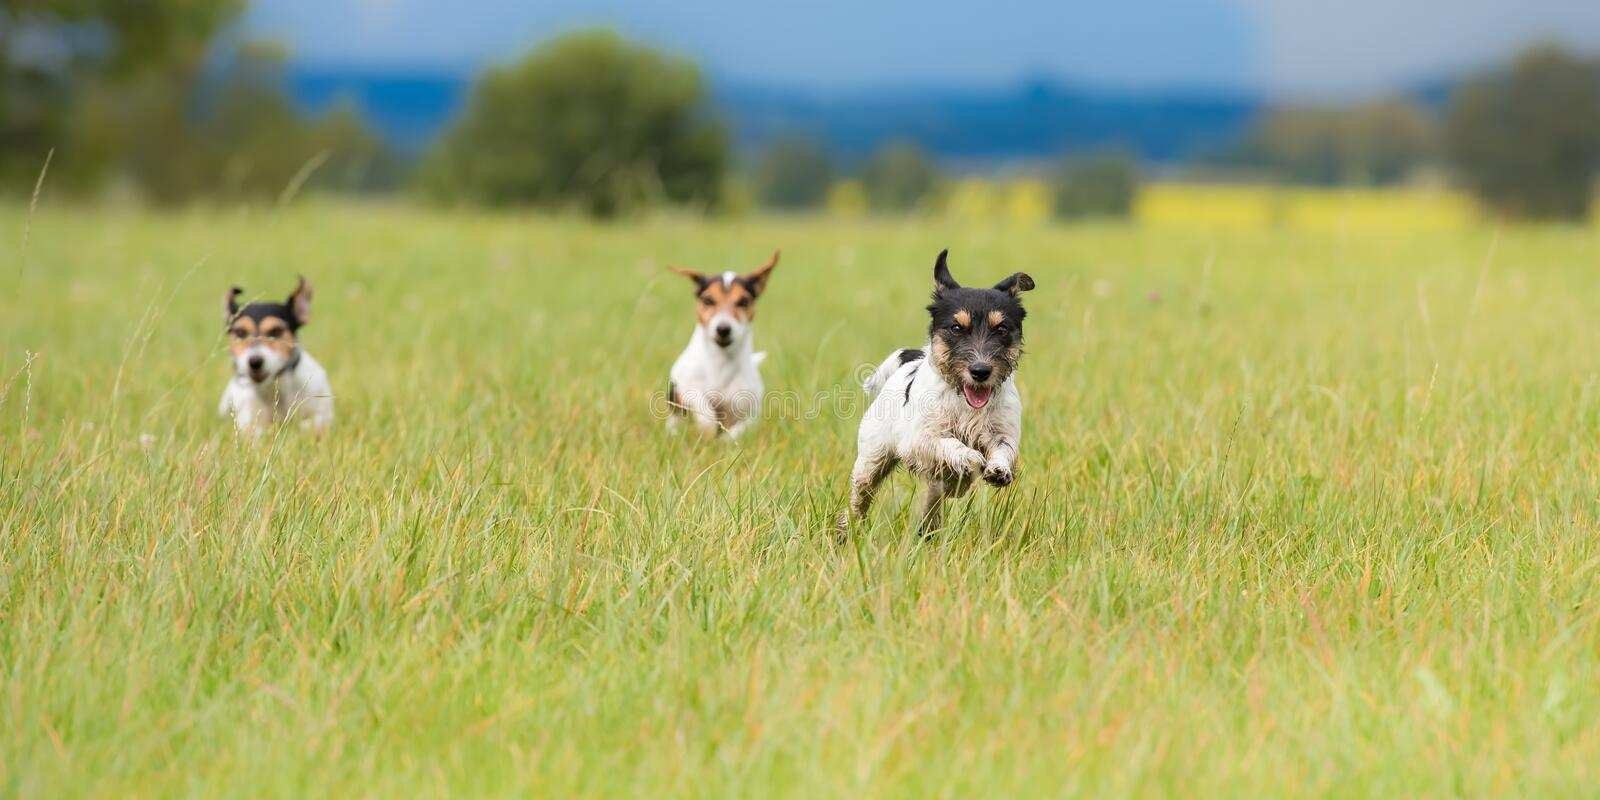 Many dogs running and playing fast in a meadow - a cute pack of Jack Russell Terriers royalty free stock images